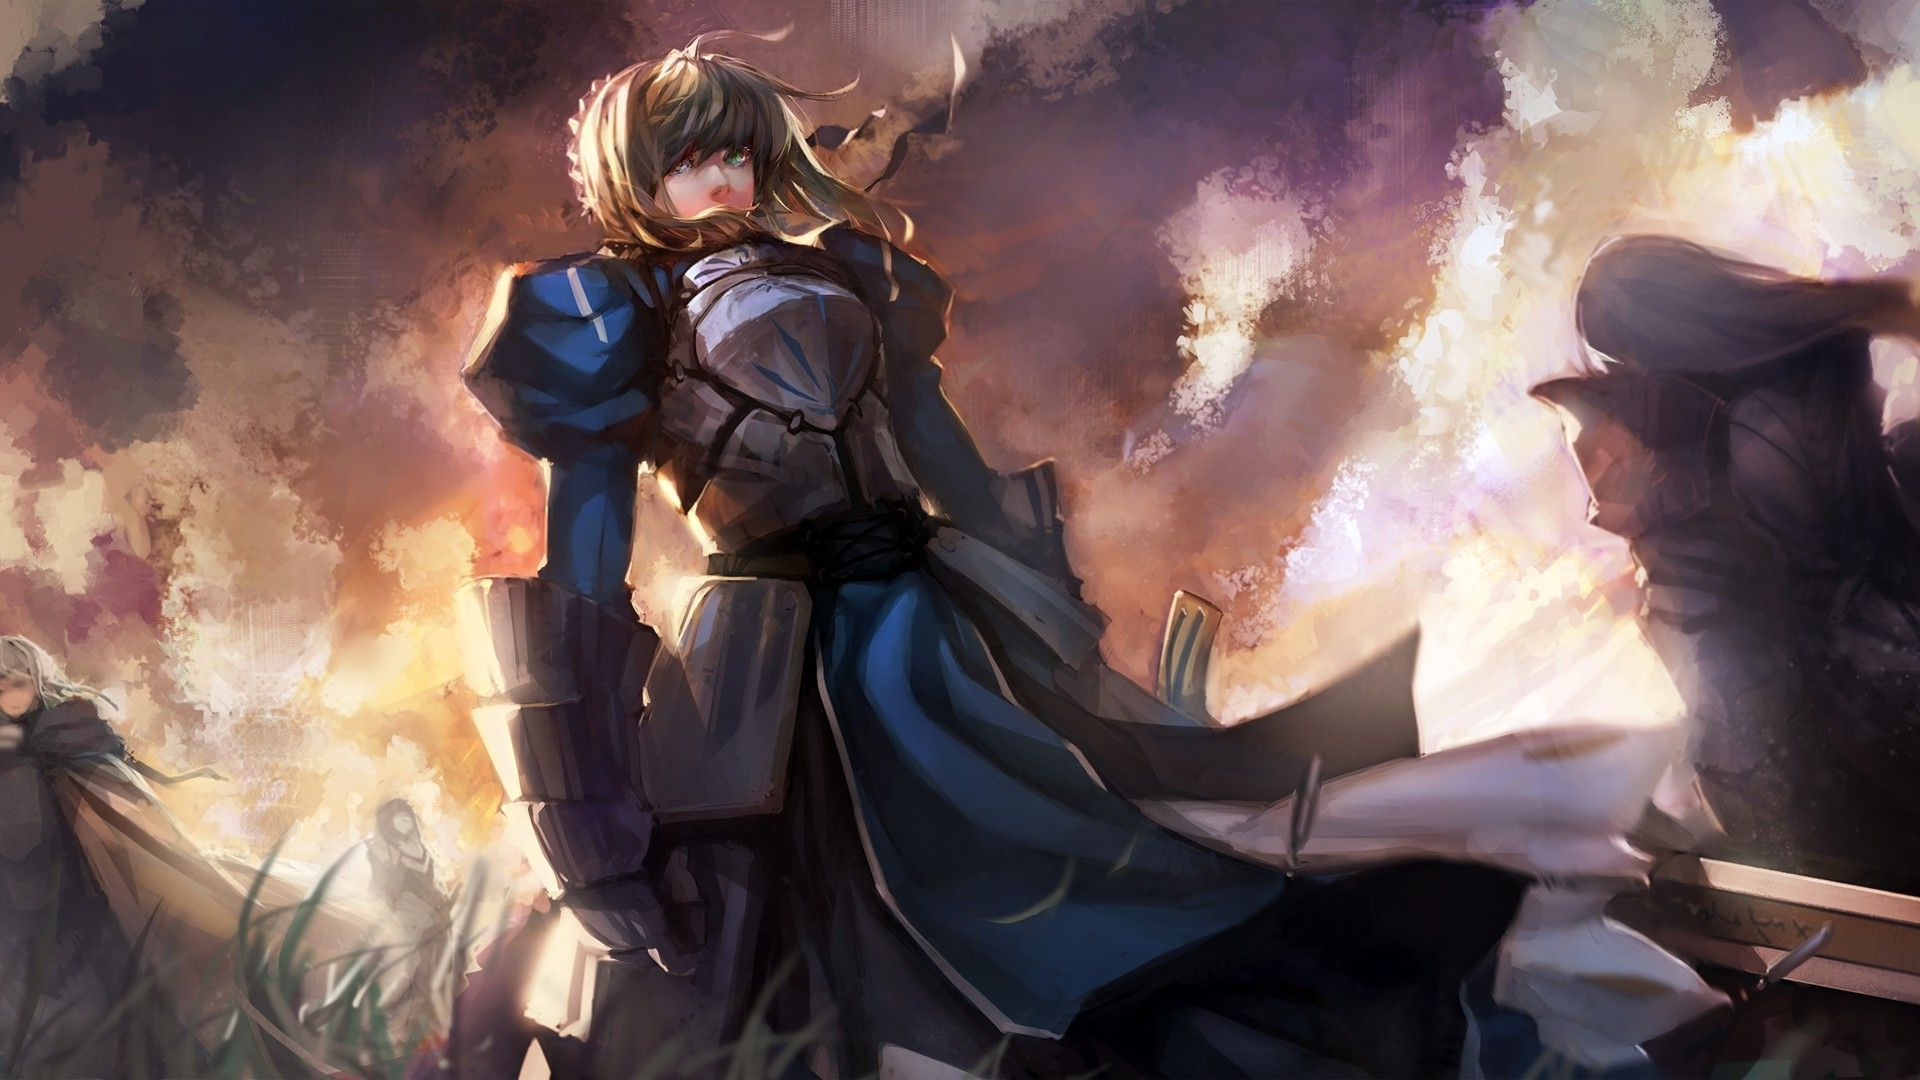 Saber   Fate stay night wallpaper   1023688 1920x1080